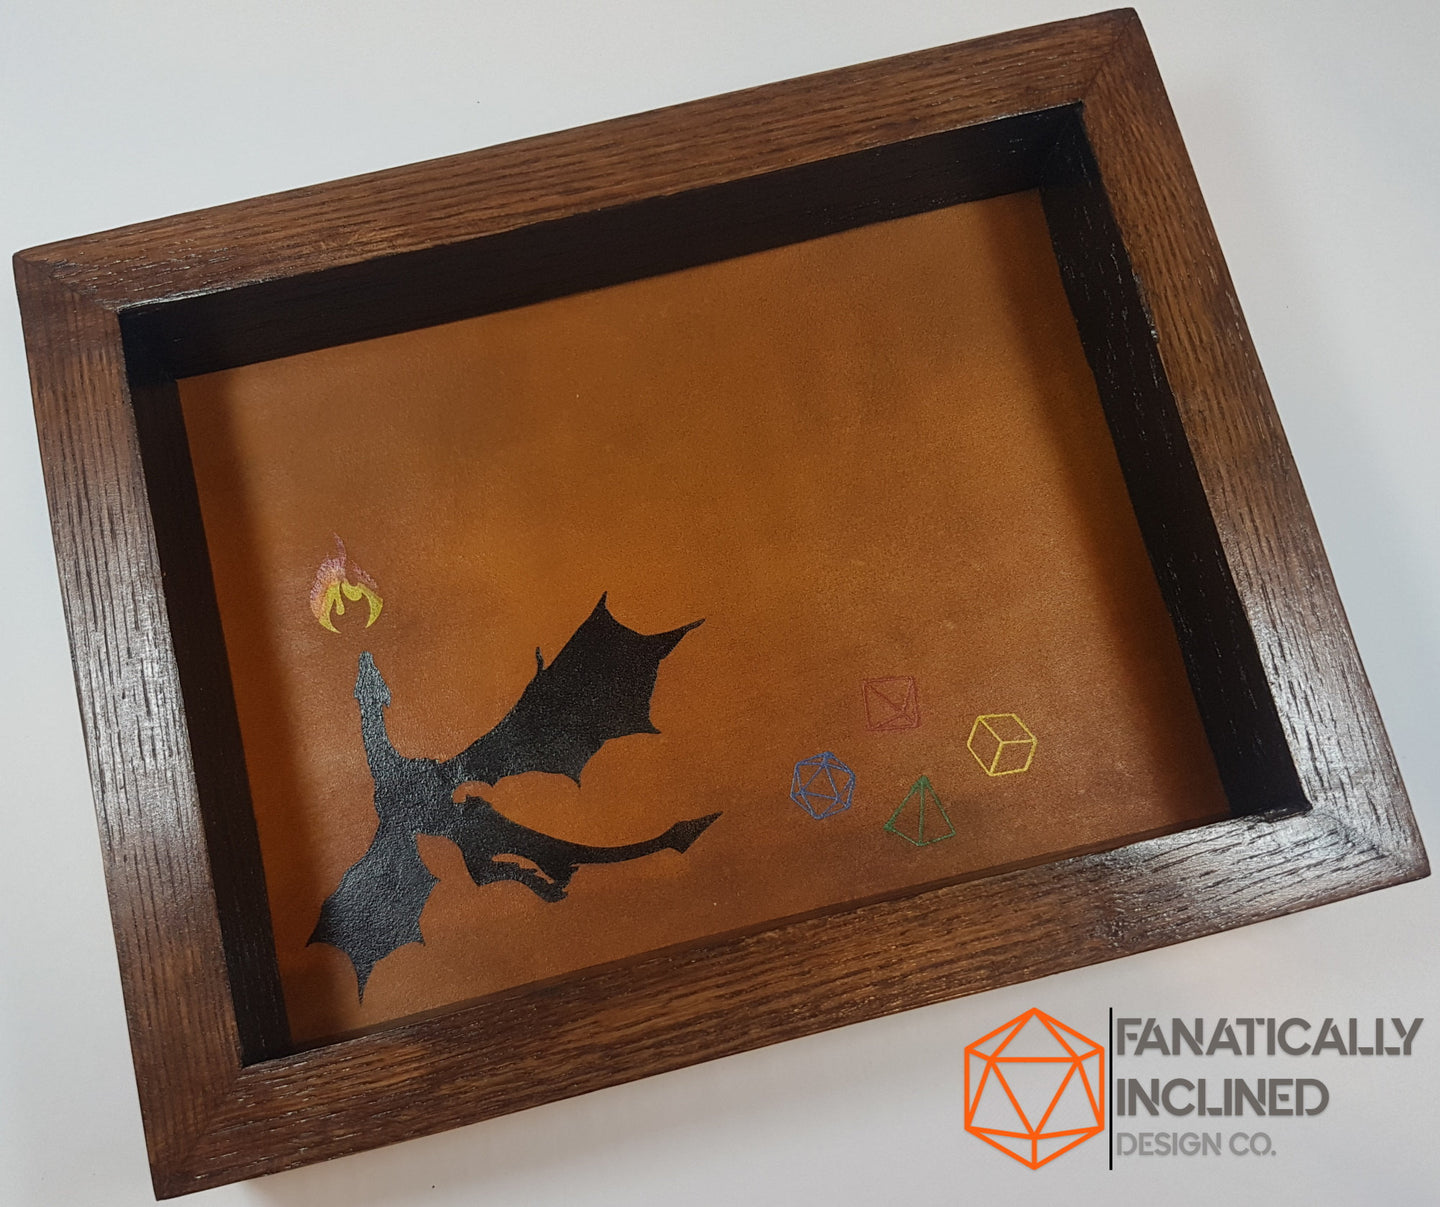 Flying Dragon Oak Handmade Wood and Leather Dice Tray